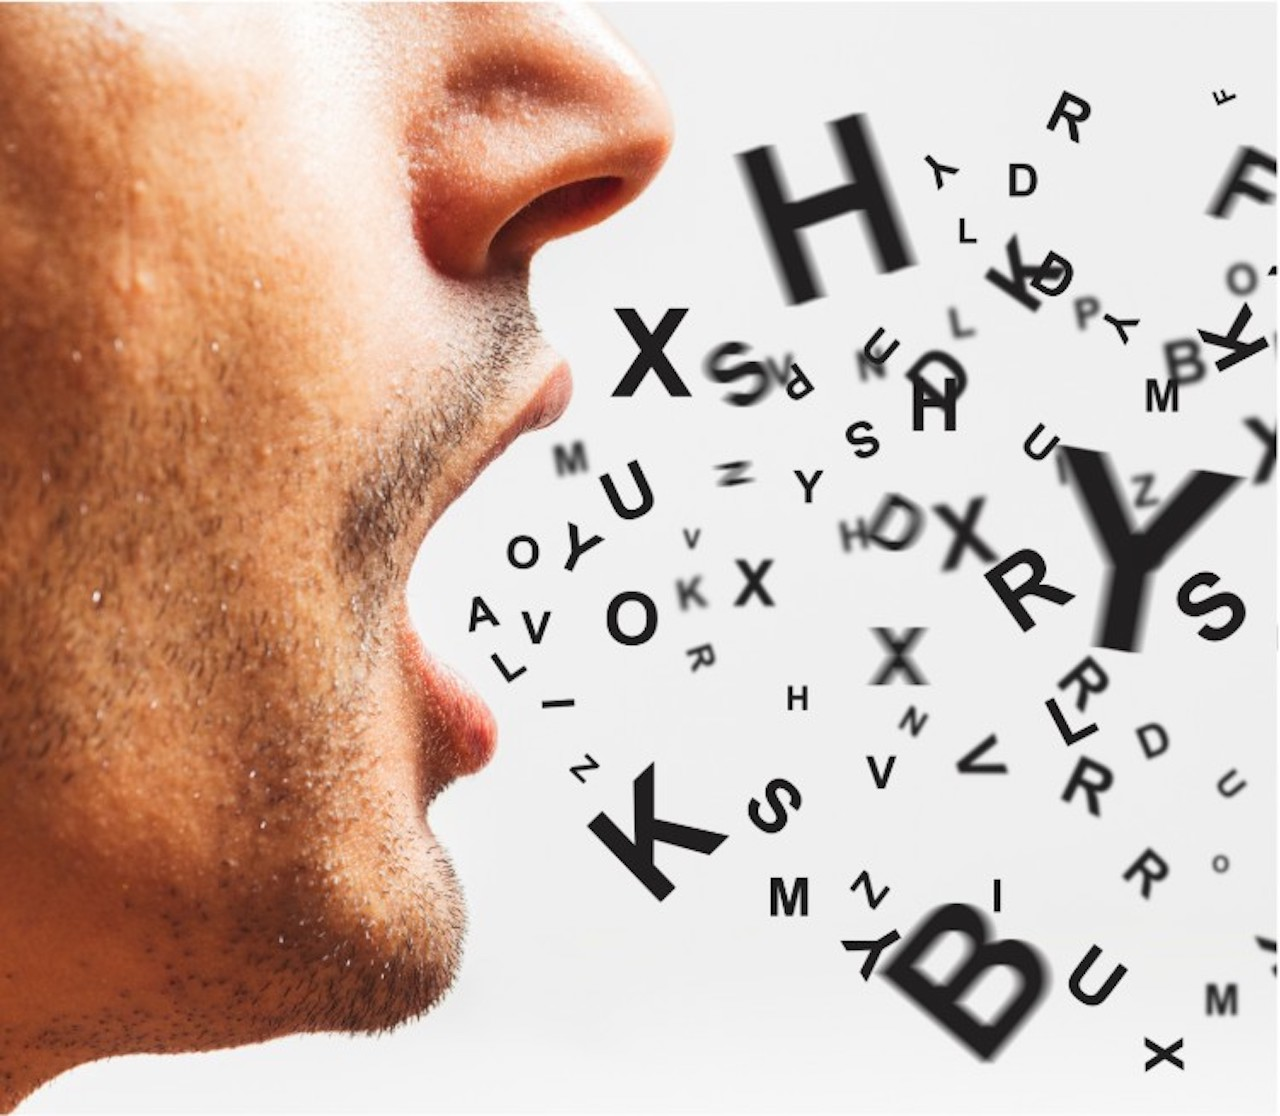 Watch Your Words! (Image by Shutterstock)